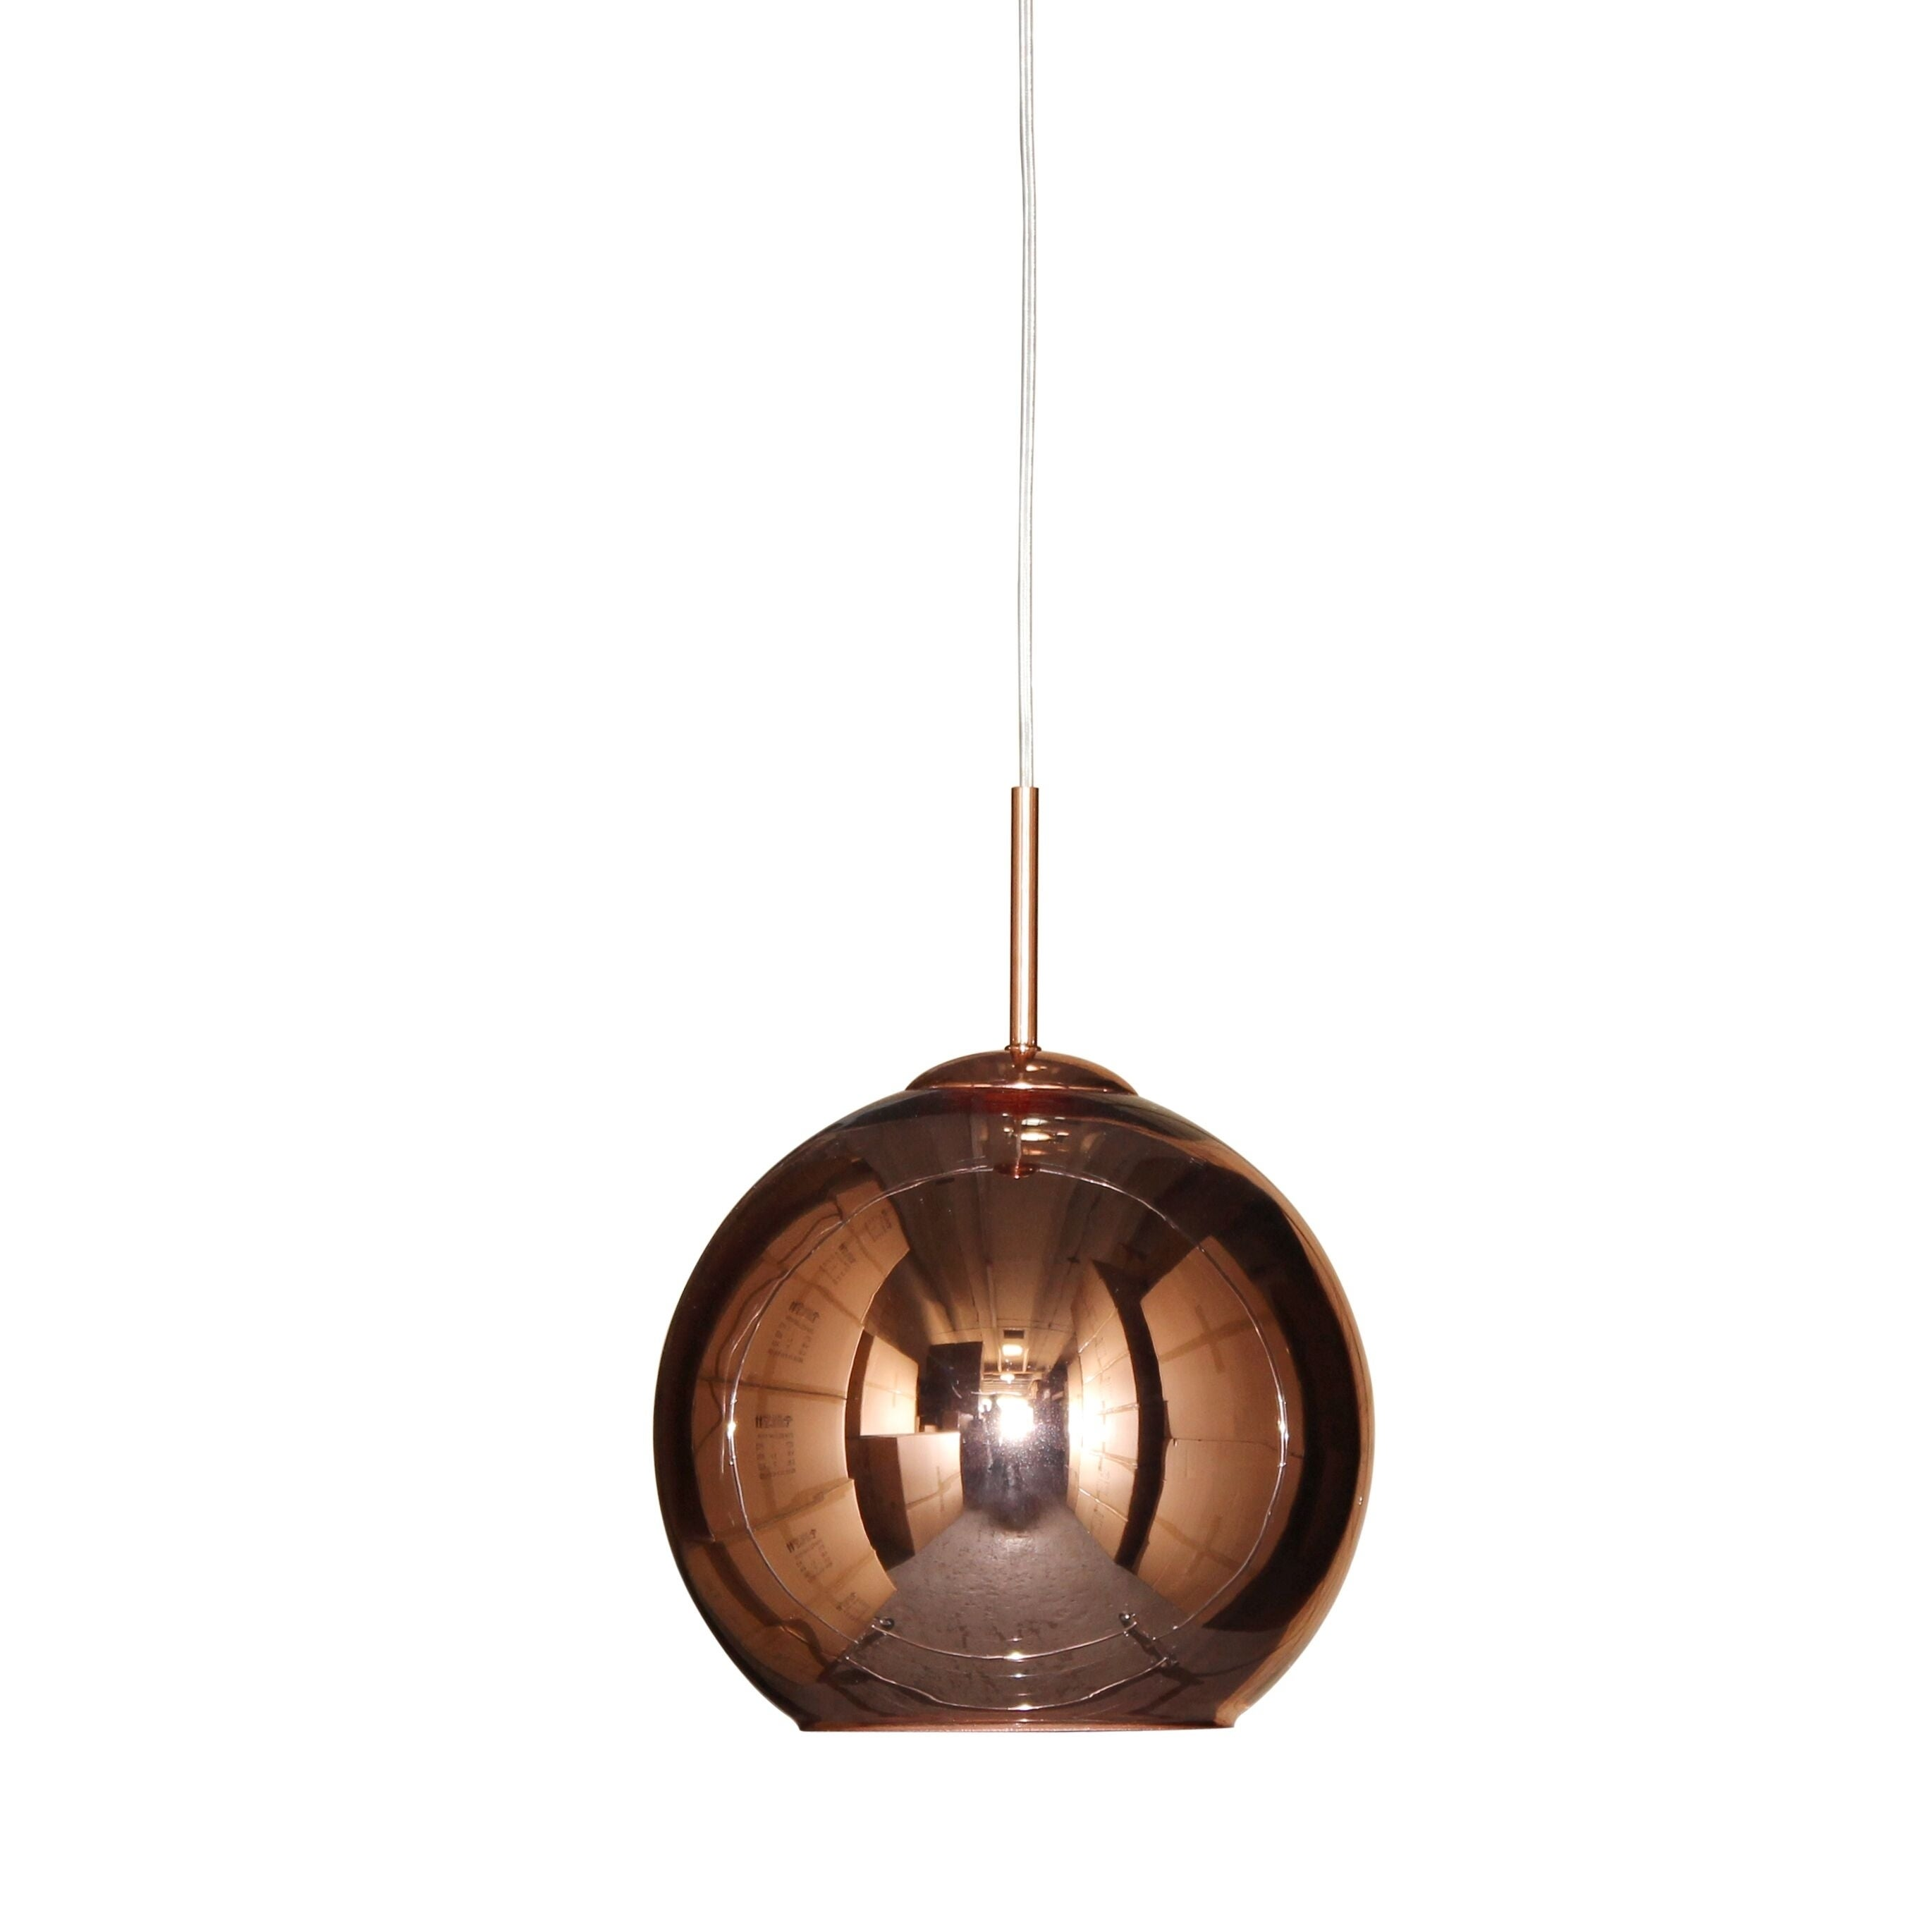 the esla retro pendant uk light industrial table wall and from lamps co restored products ceiling lights s salvaged antique projectvintage mirrored